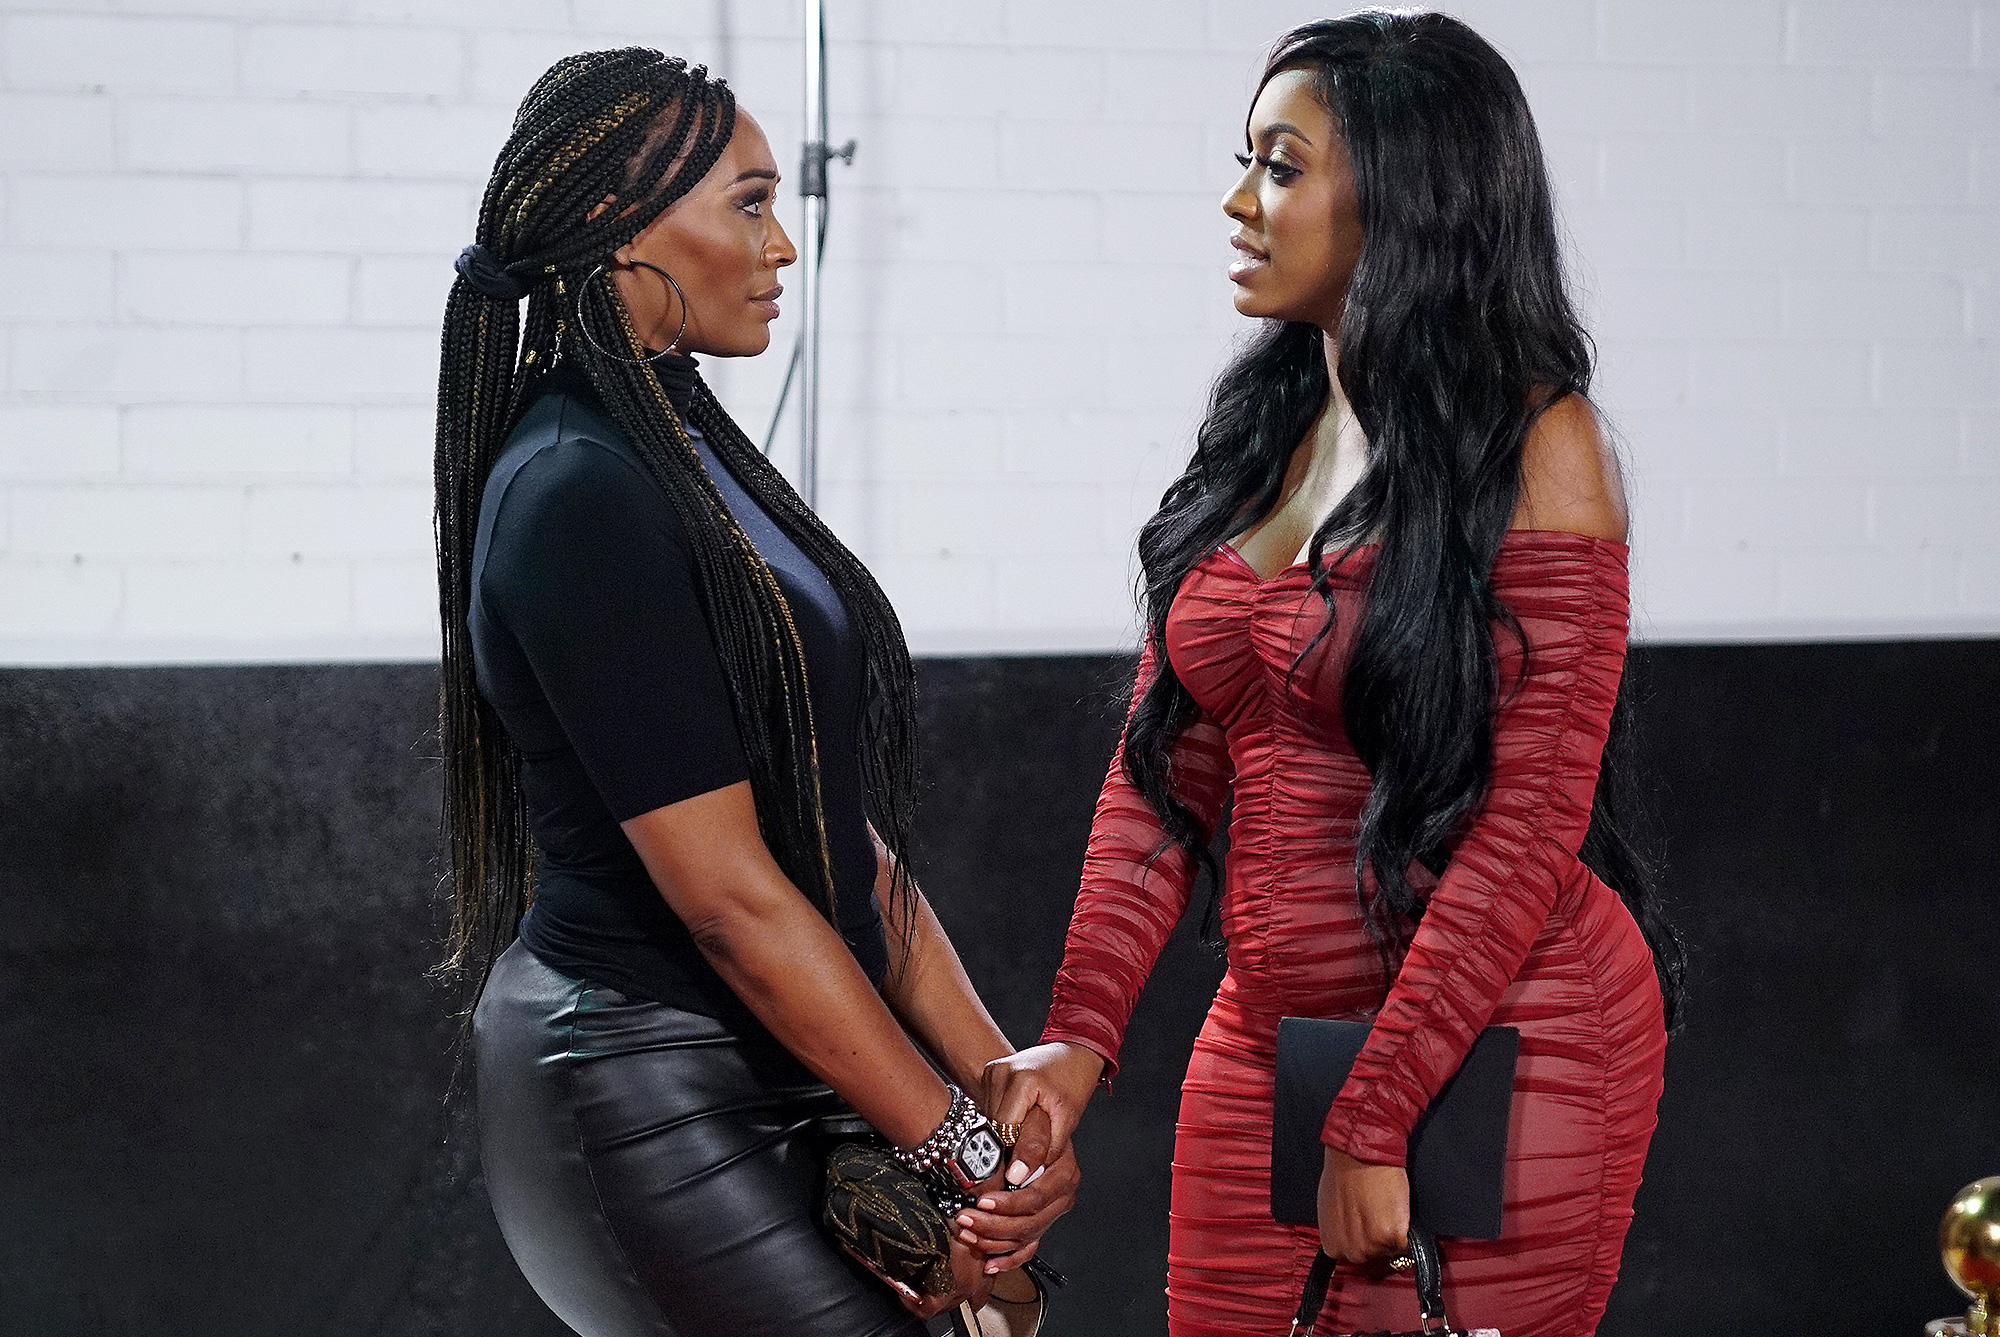 porsha-williams-latest-photo-with-cynthia-bailey-has-some-people-criticizing-them-for-teaming-up-to-hate-nene-leakes